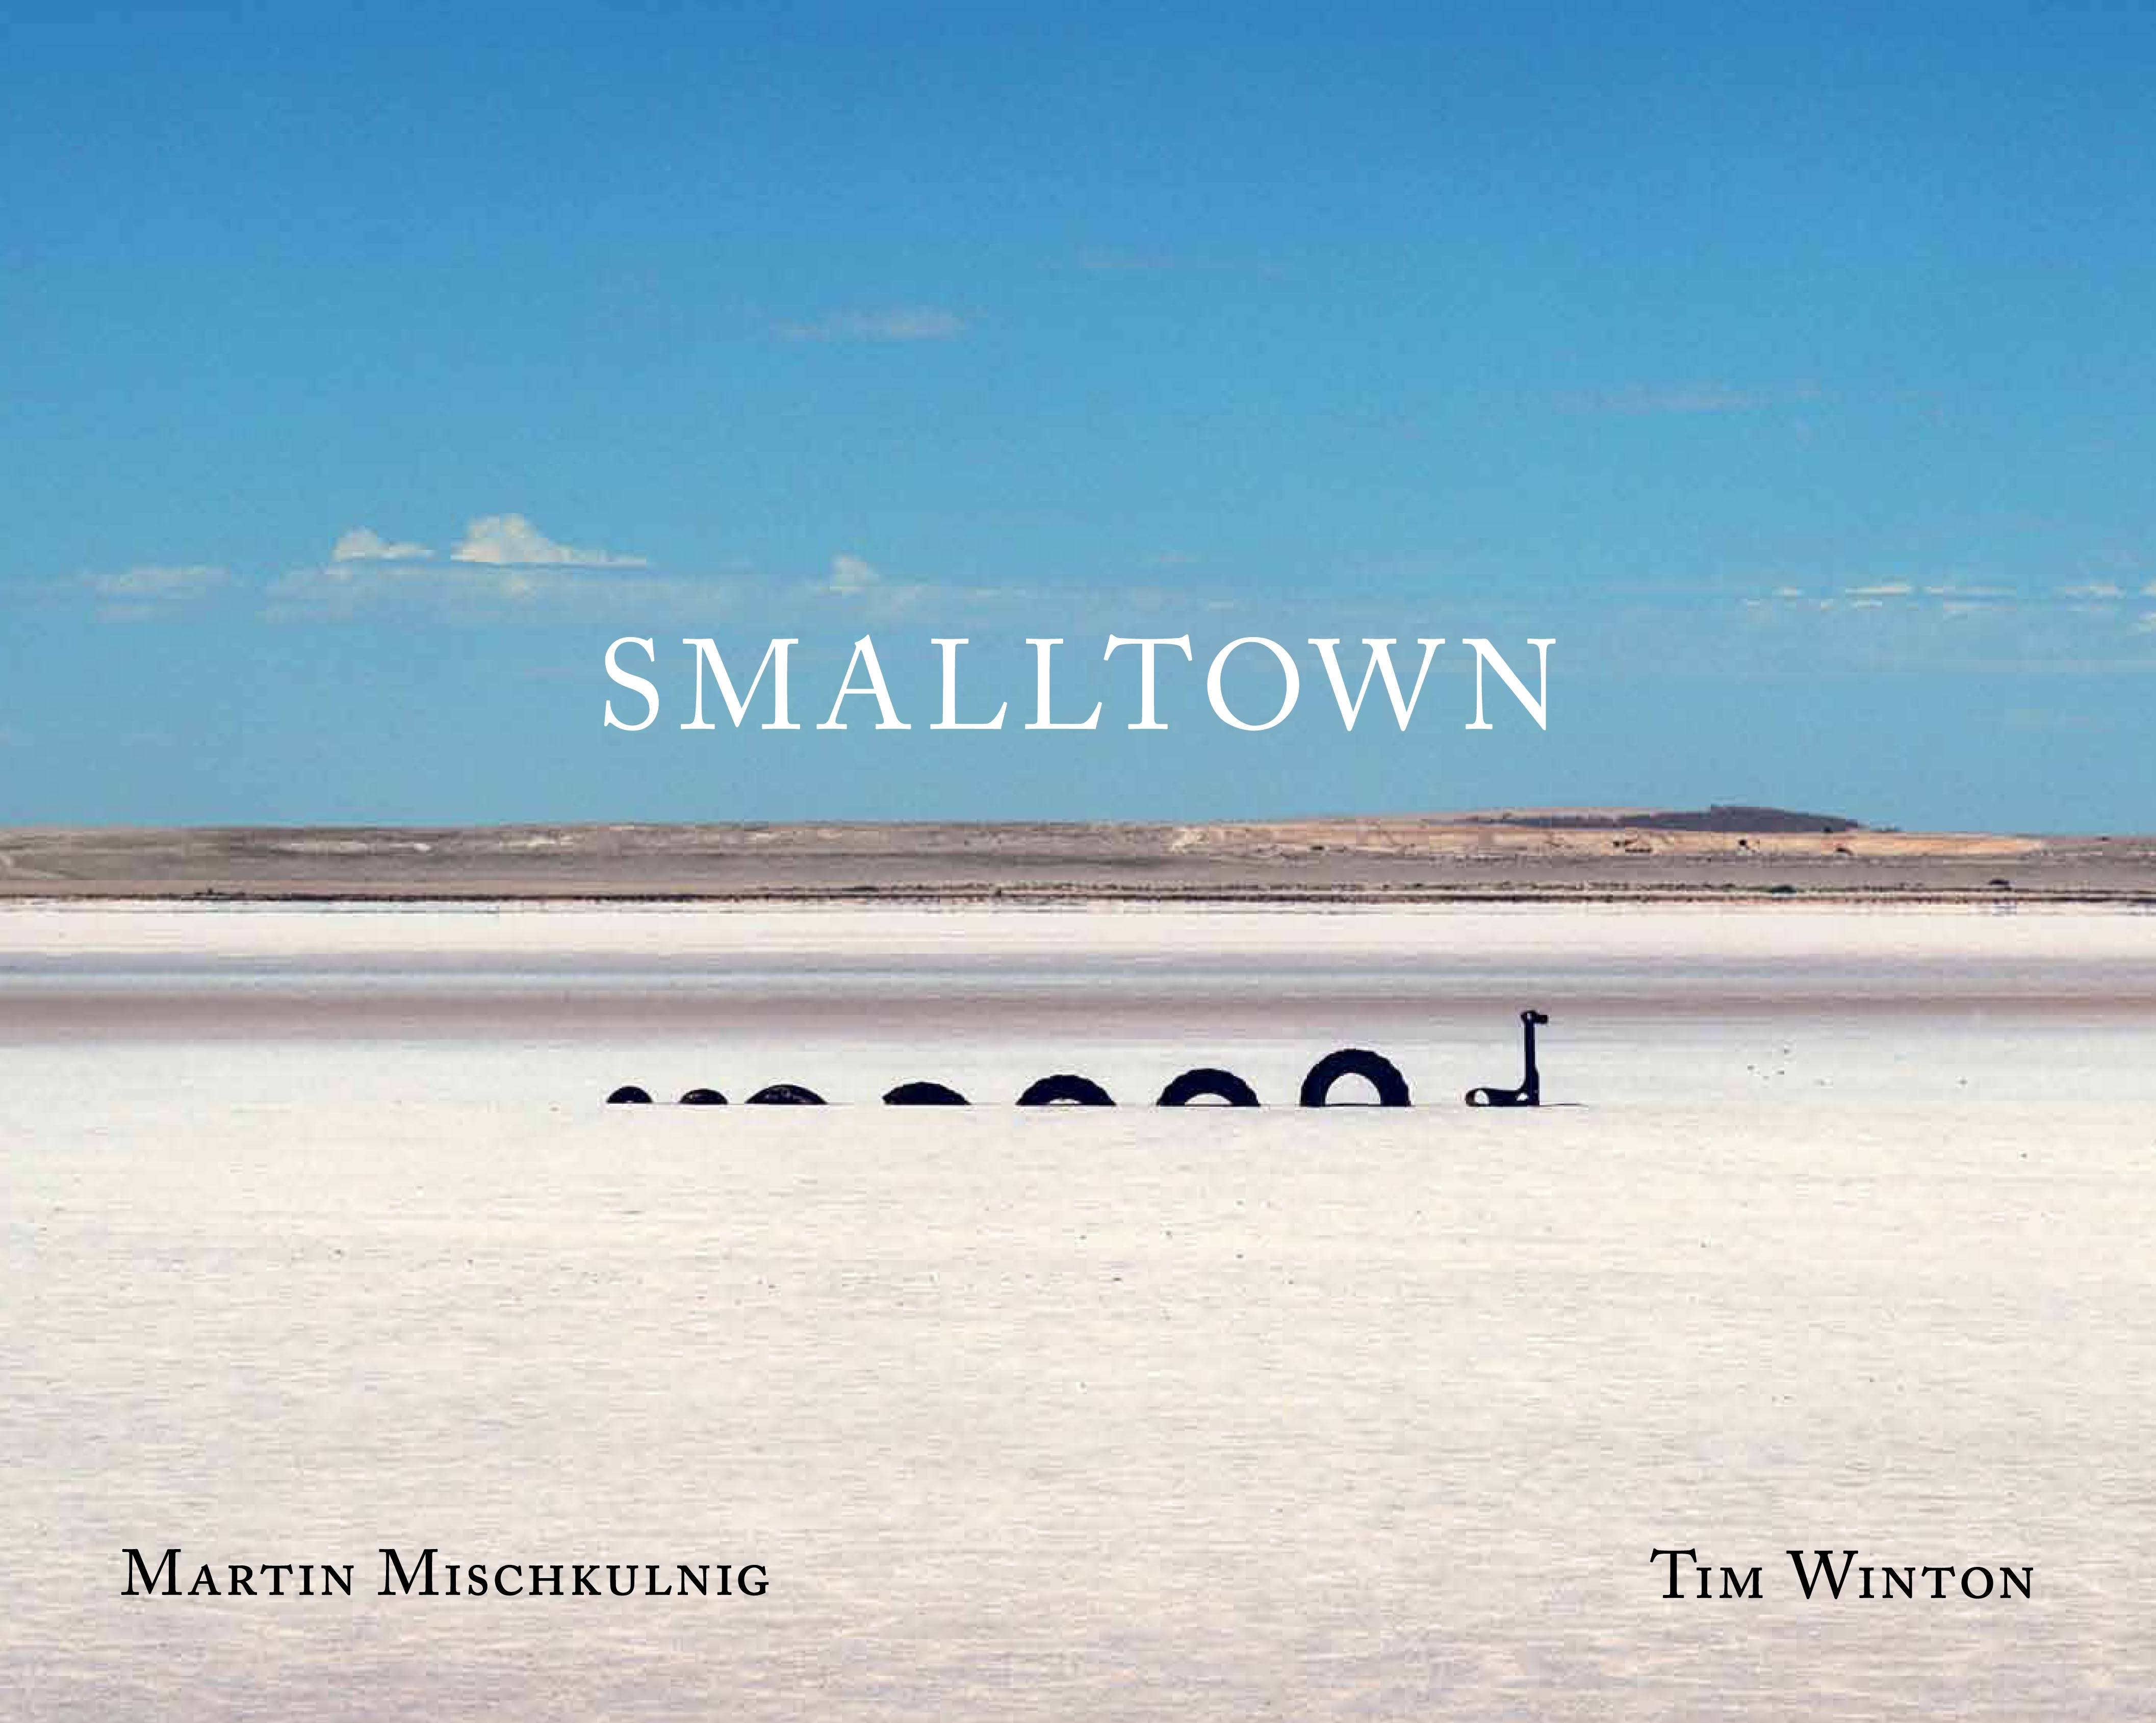 Smalltown The Book  Wwwmartinmischkulnigcom Isbn   Large Format Book With Essay By Tim Winton   Photographs Shot On A  X  Large Format Camera Published By Penguin Global Compare And Contrast Essay High School Vs College also Find A Business Plan Writer  Research Paper Essay